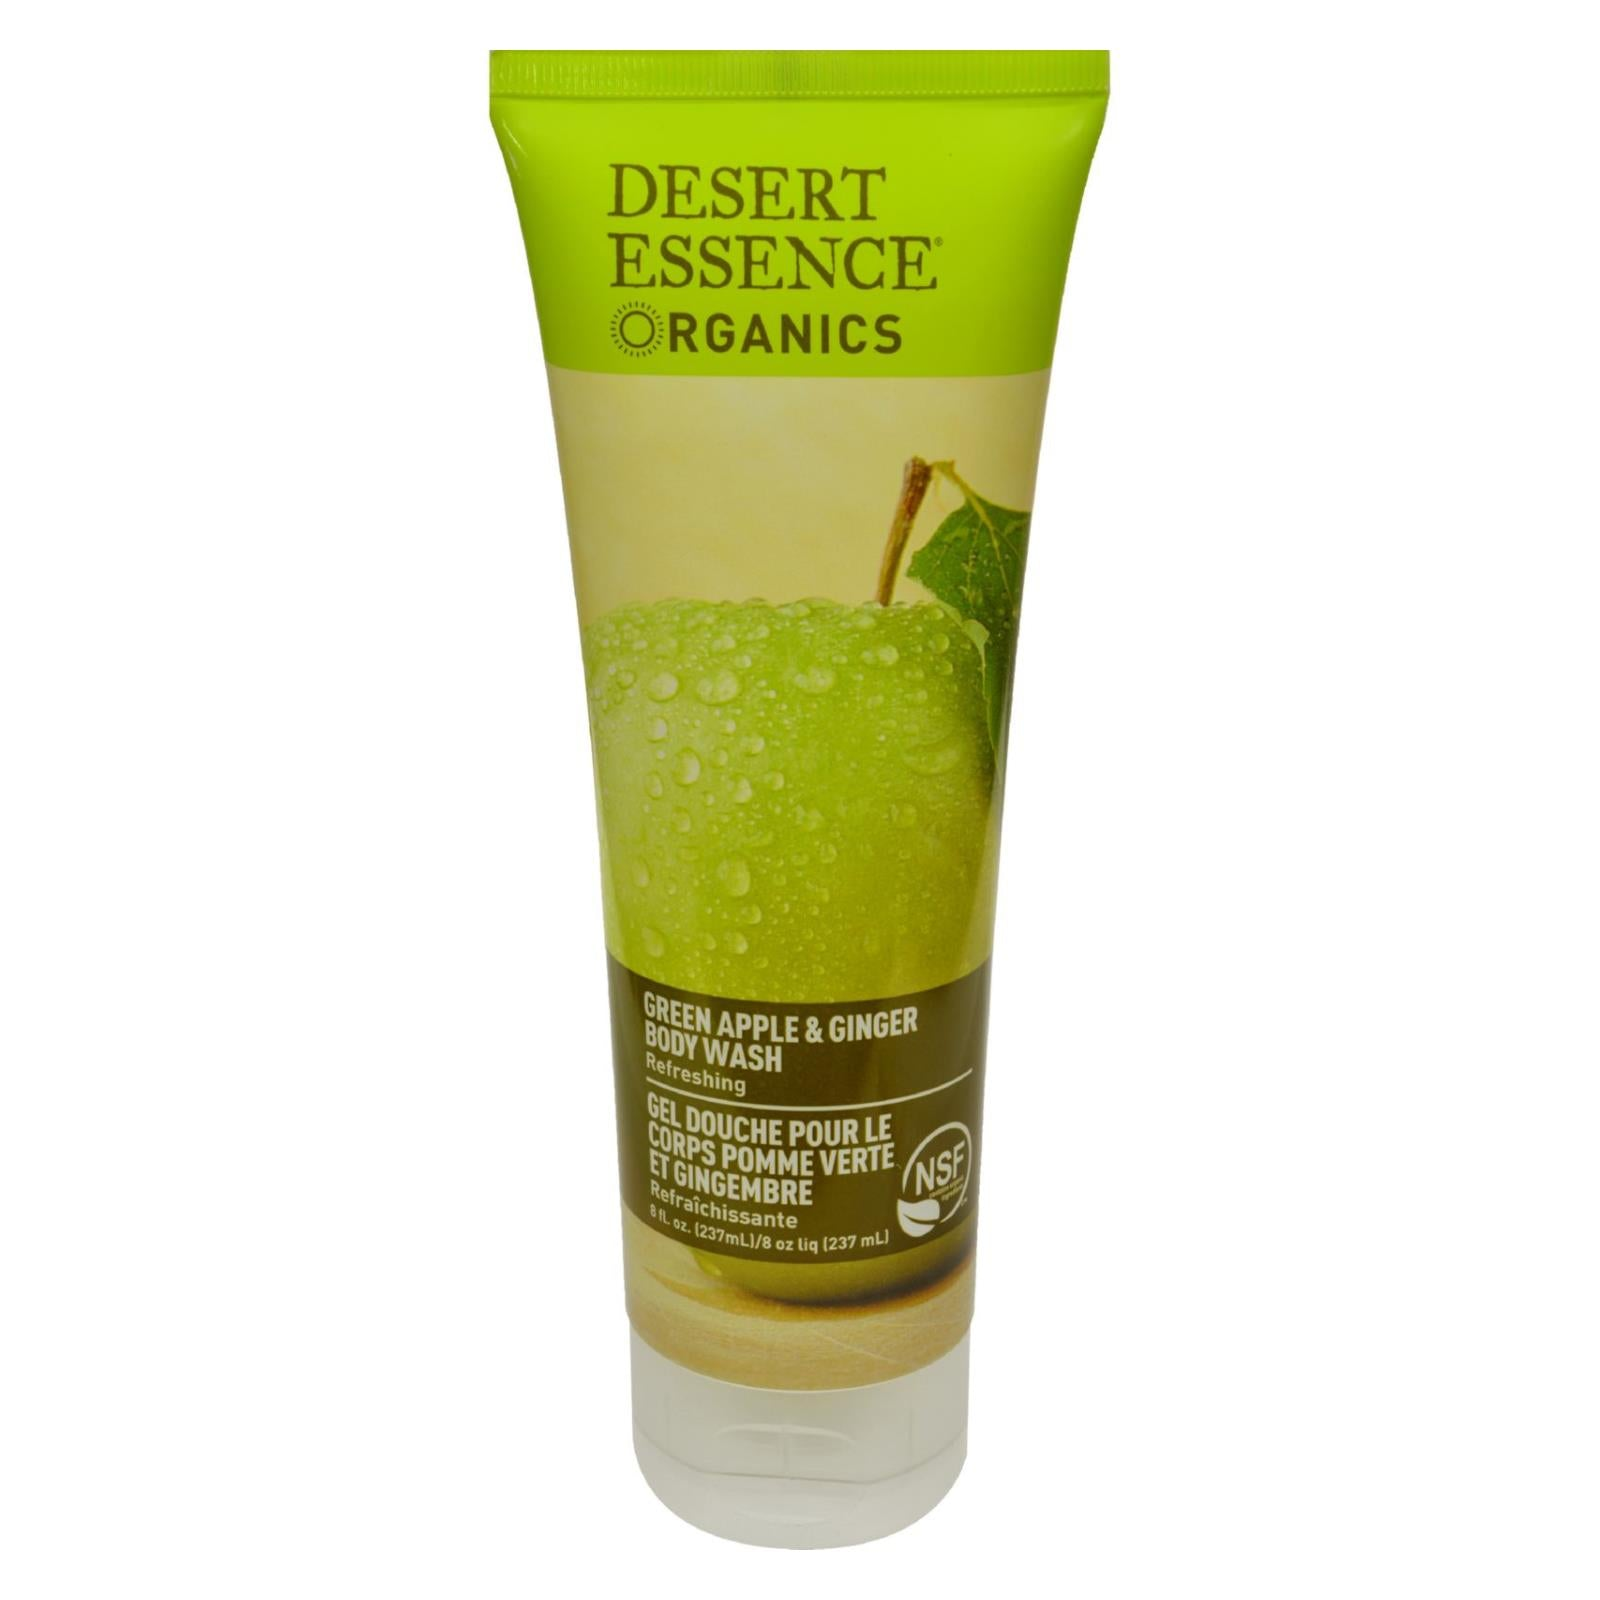 Buy Desert Essence Body Wash Green Apple and Ginger - 8 fl oz - Body Wash from Veroeco.com